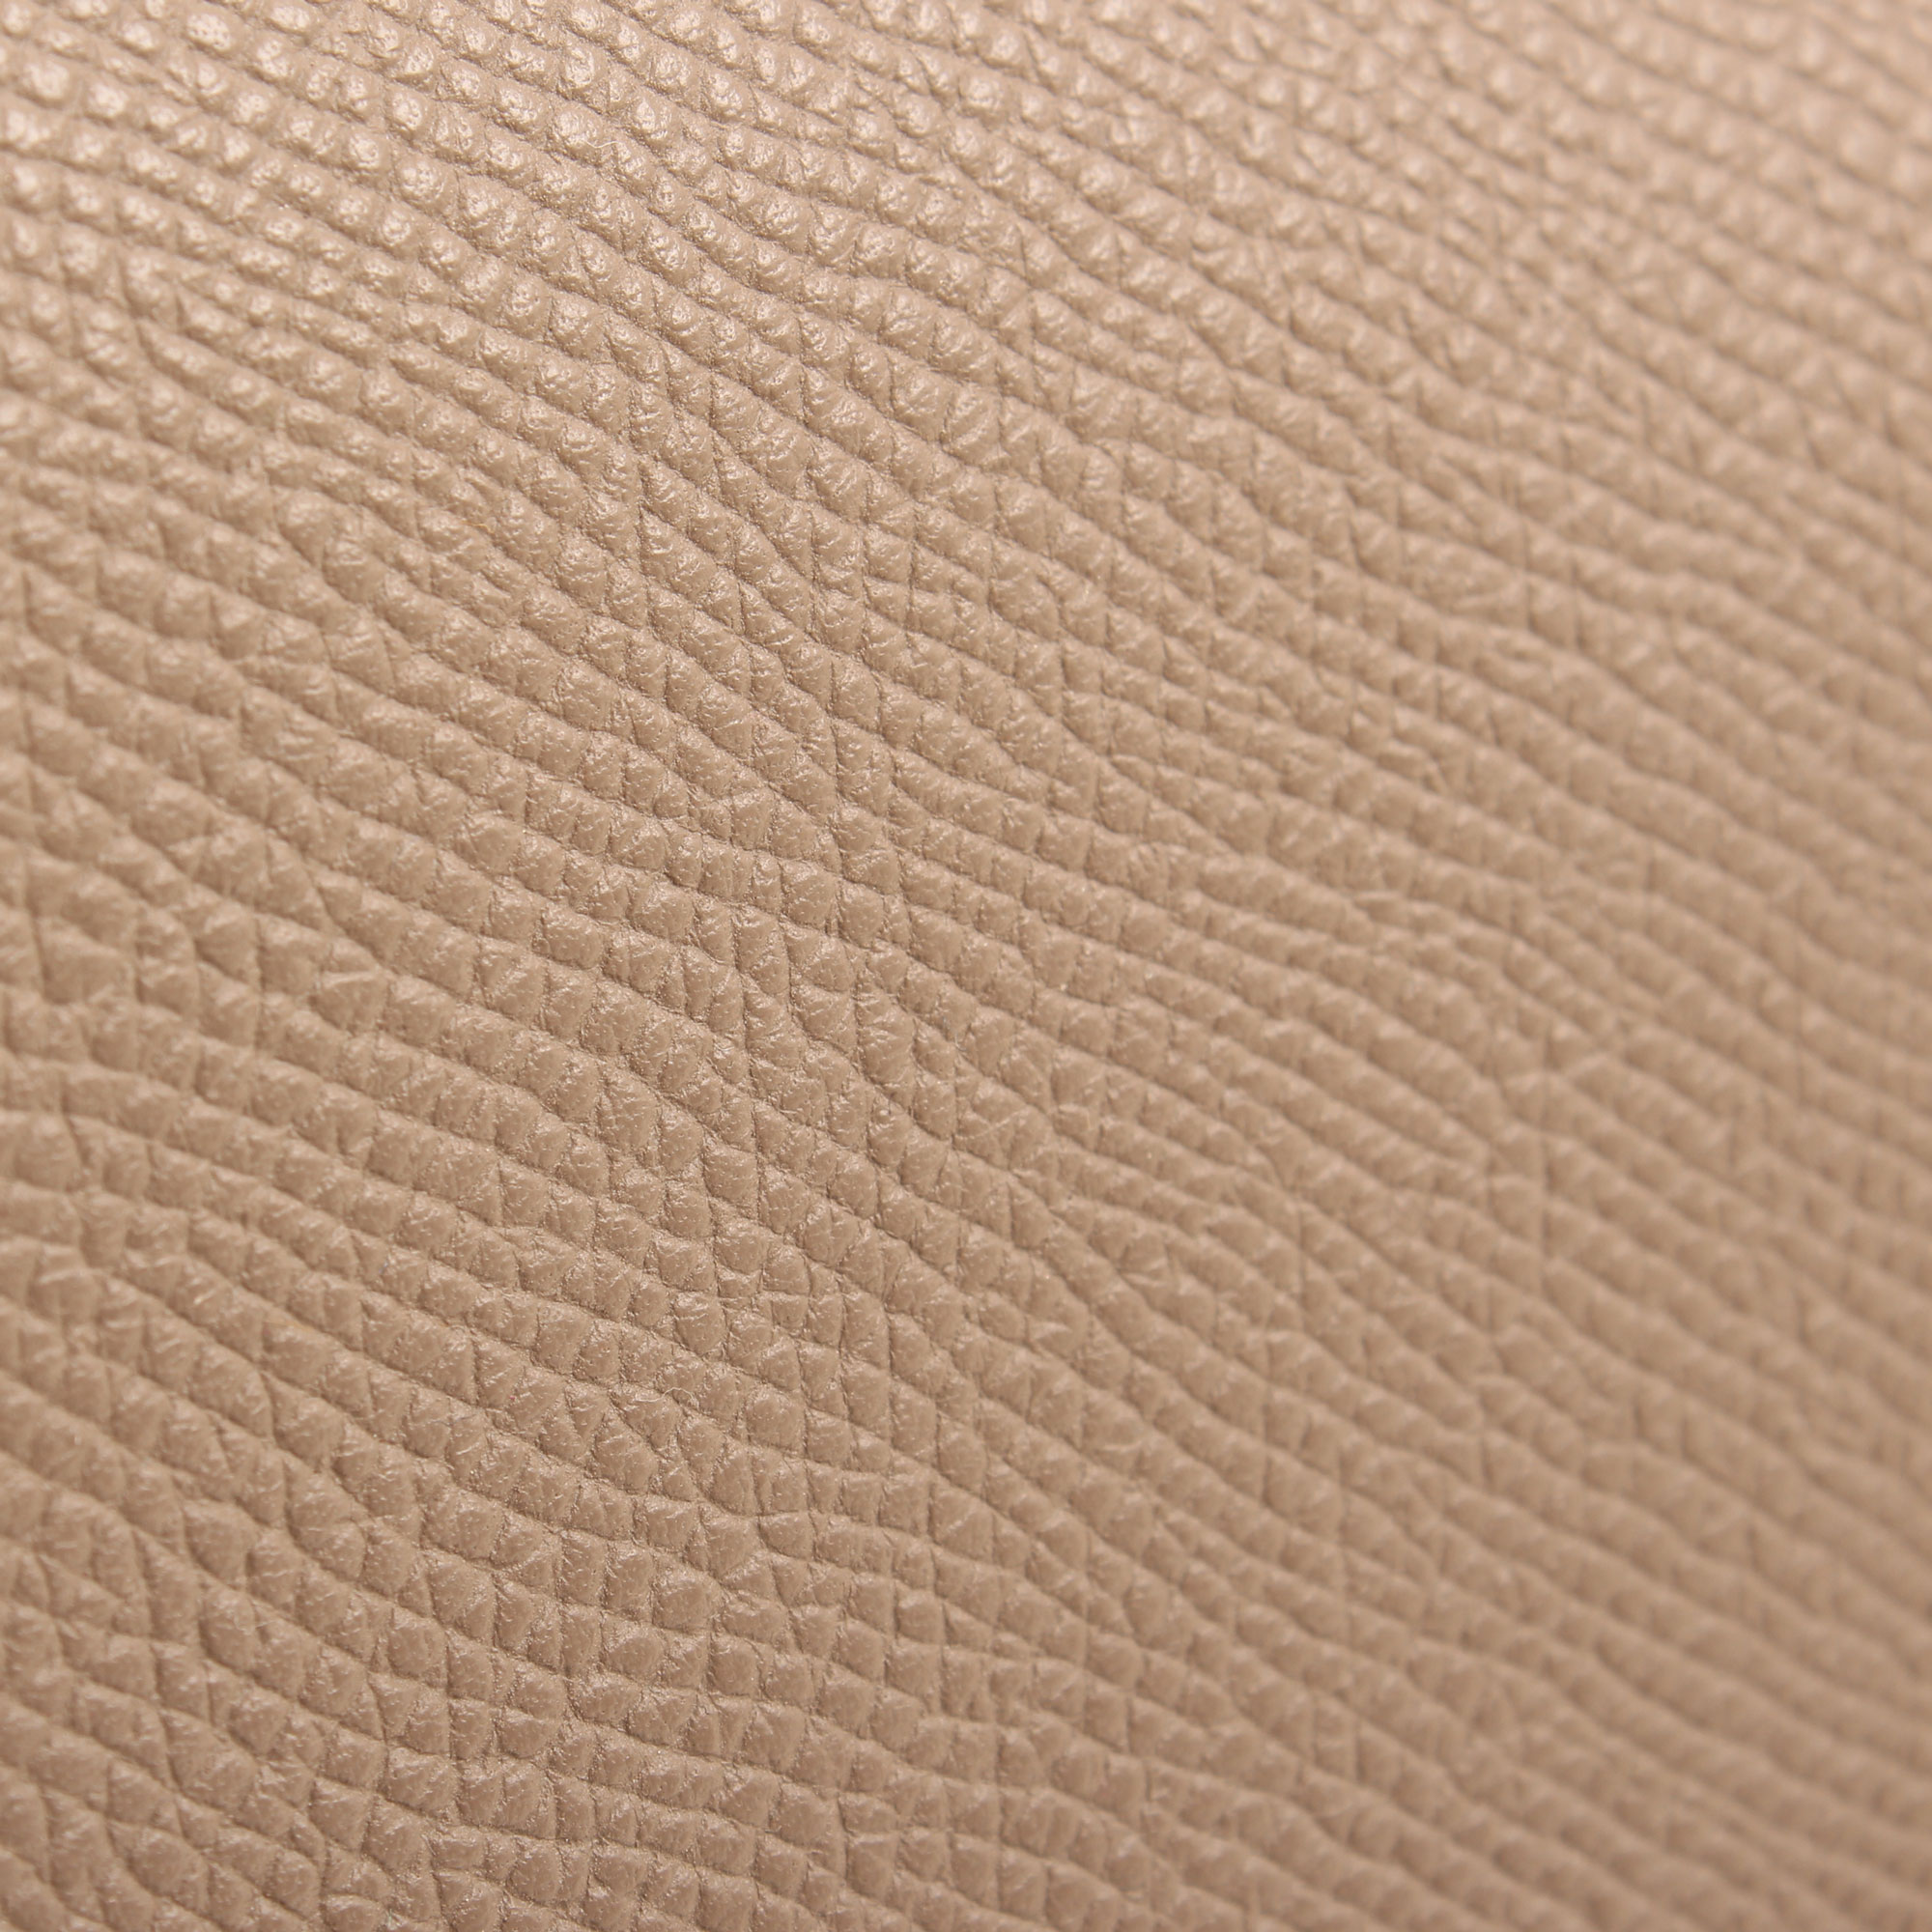 Leather detail of celine trotteur crossbody bag grey grain leather